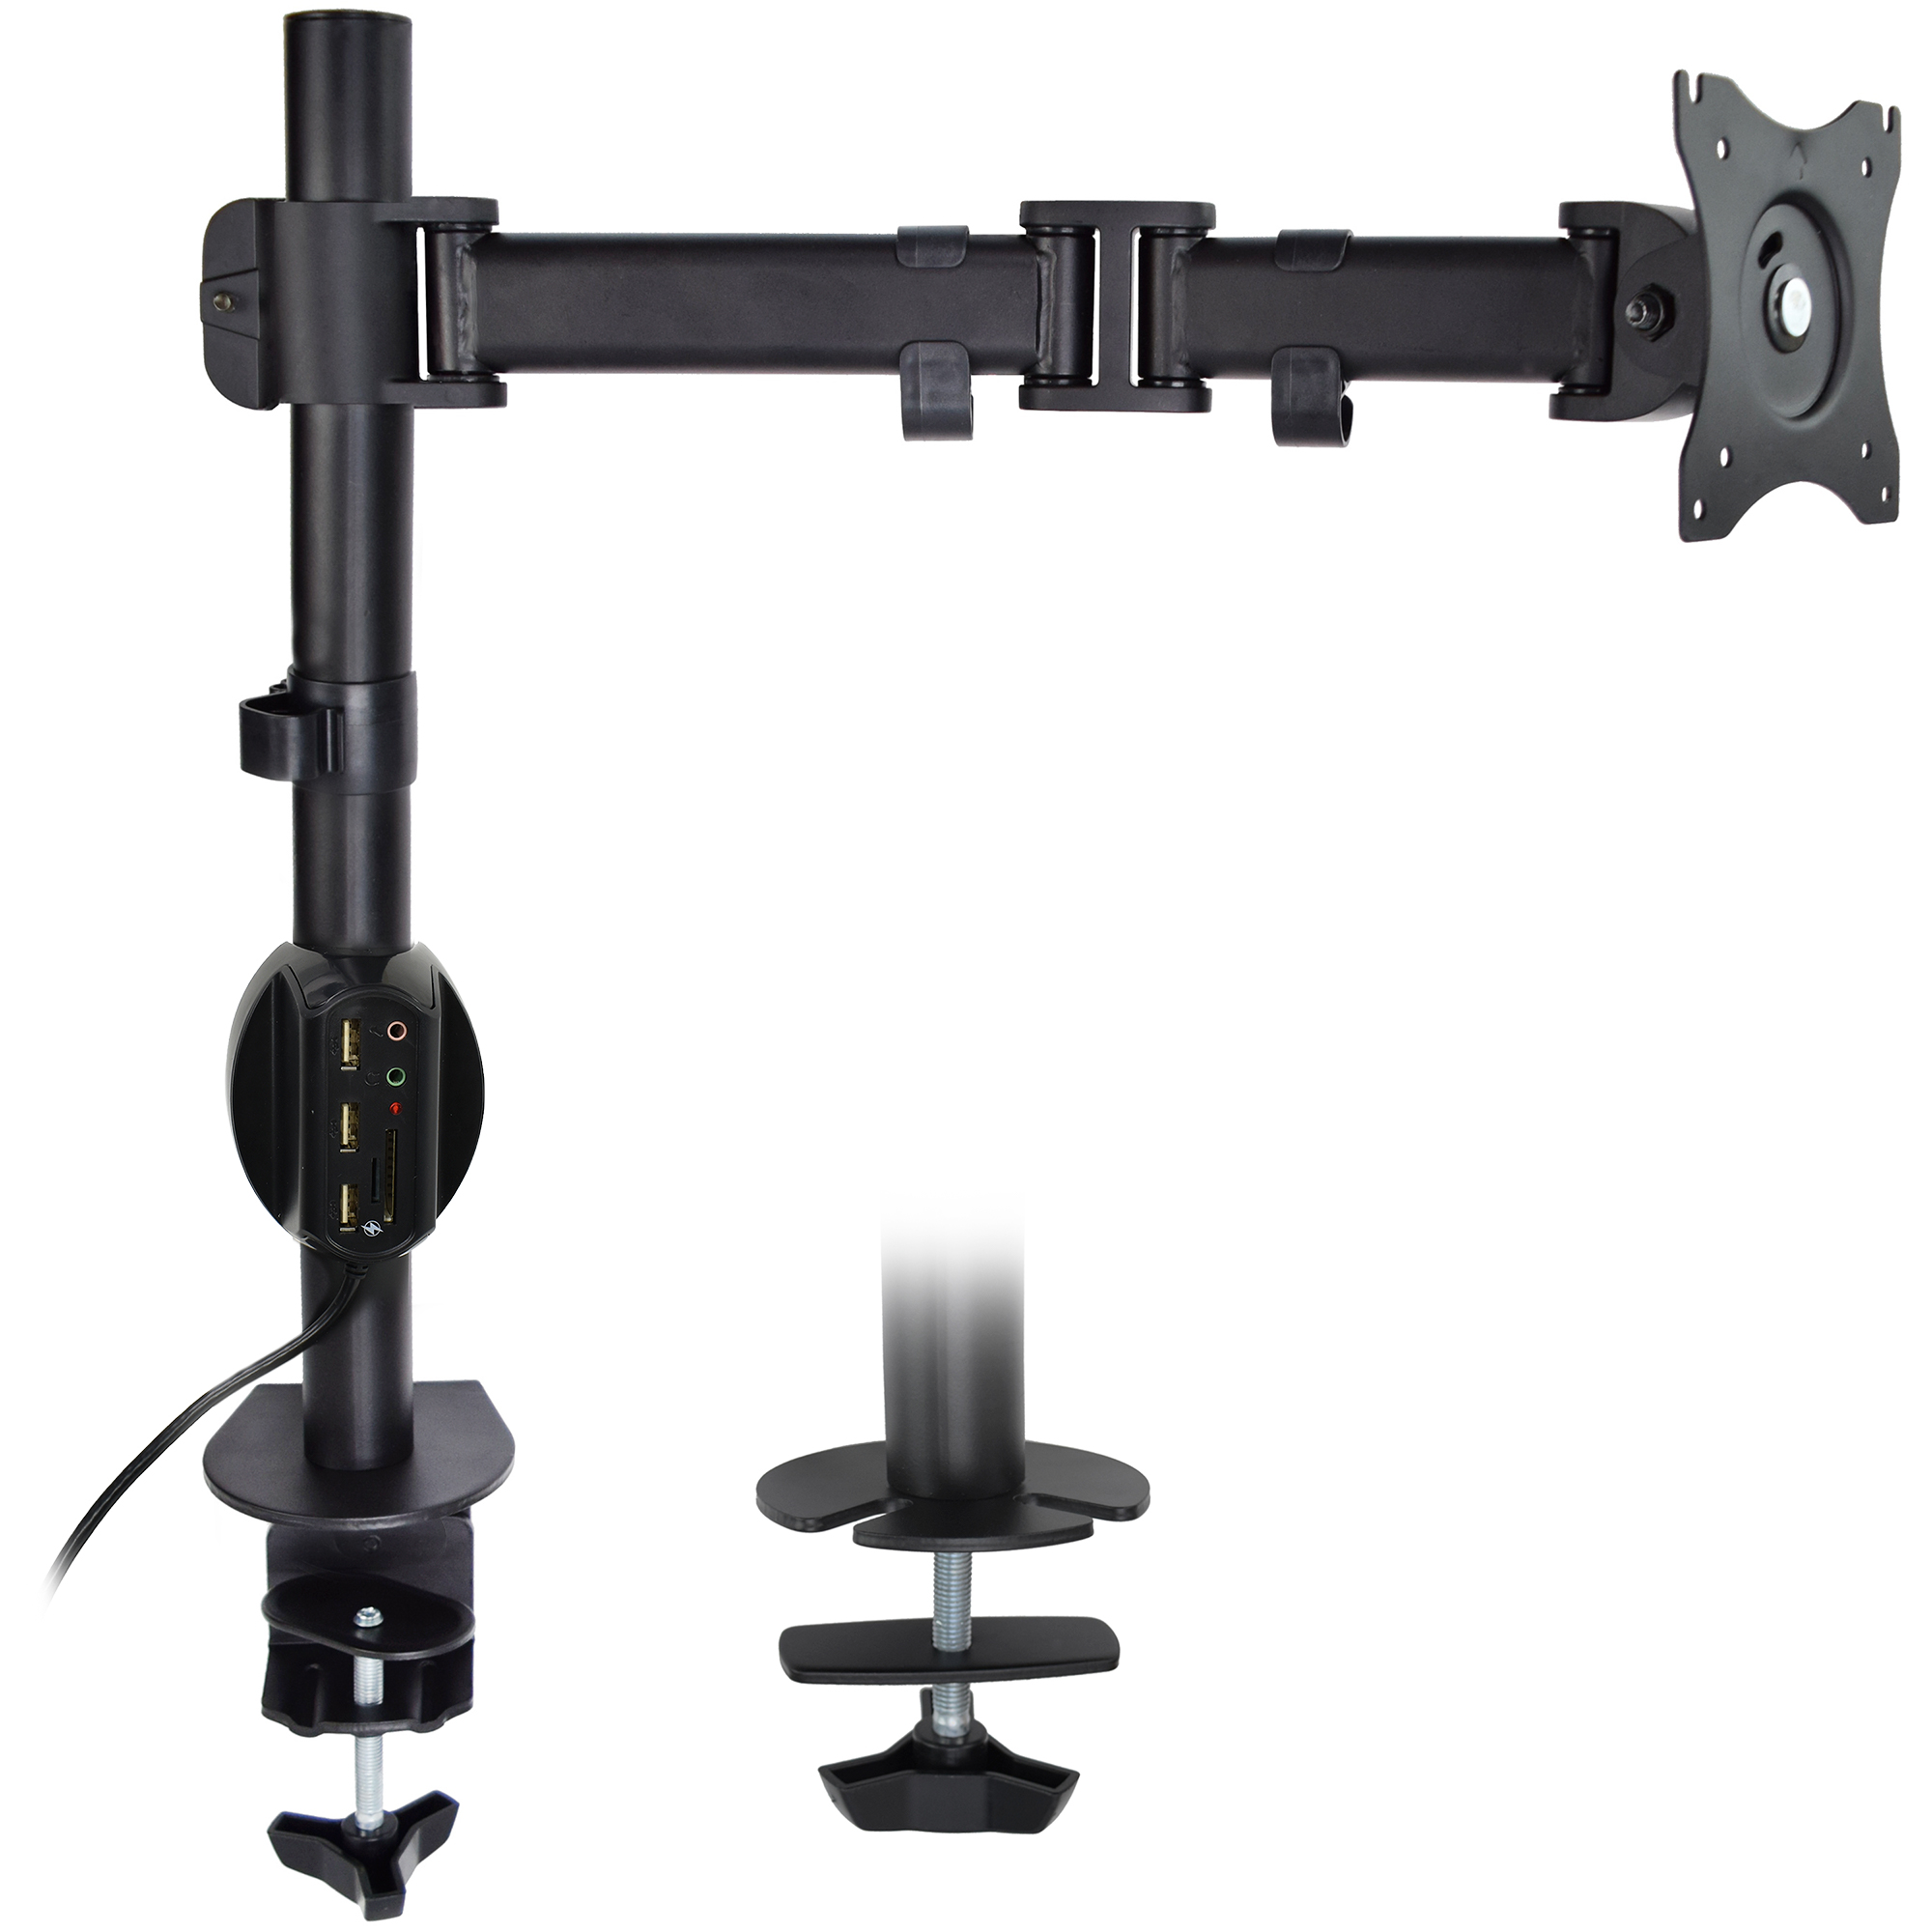 "VIVO Single Monitor Desk Mount Stand with USB Charger Dock Combo | Holds 1 Screen up to 32"" (STAND-KIT-1MU)"